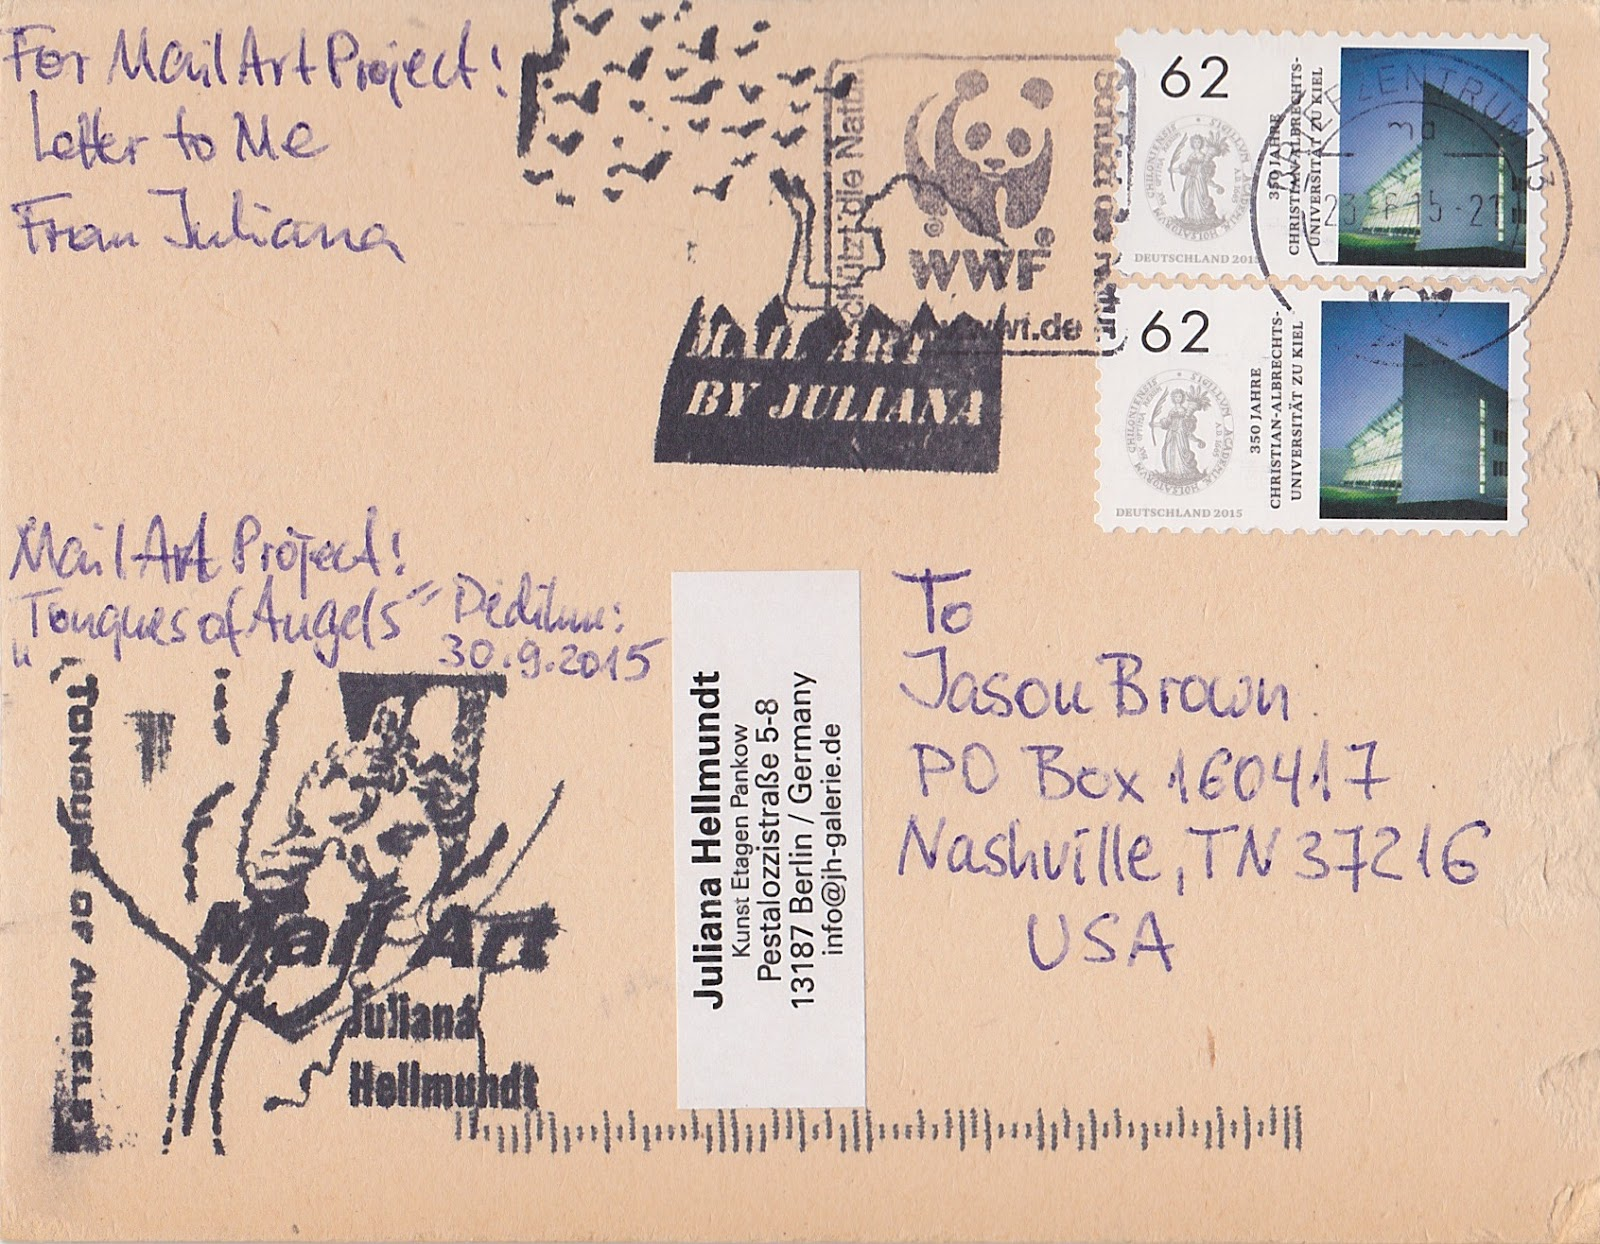 Letter To Me : A Mail Art Project: Page 19 : Juliana Hellmundt